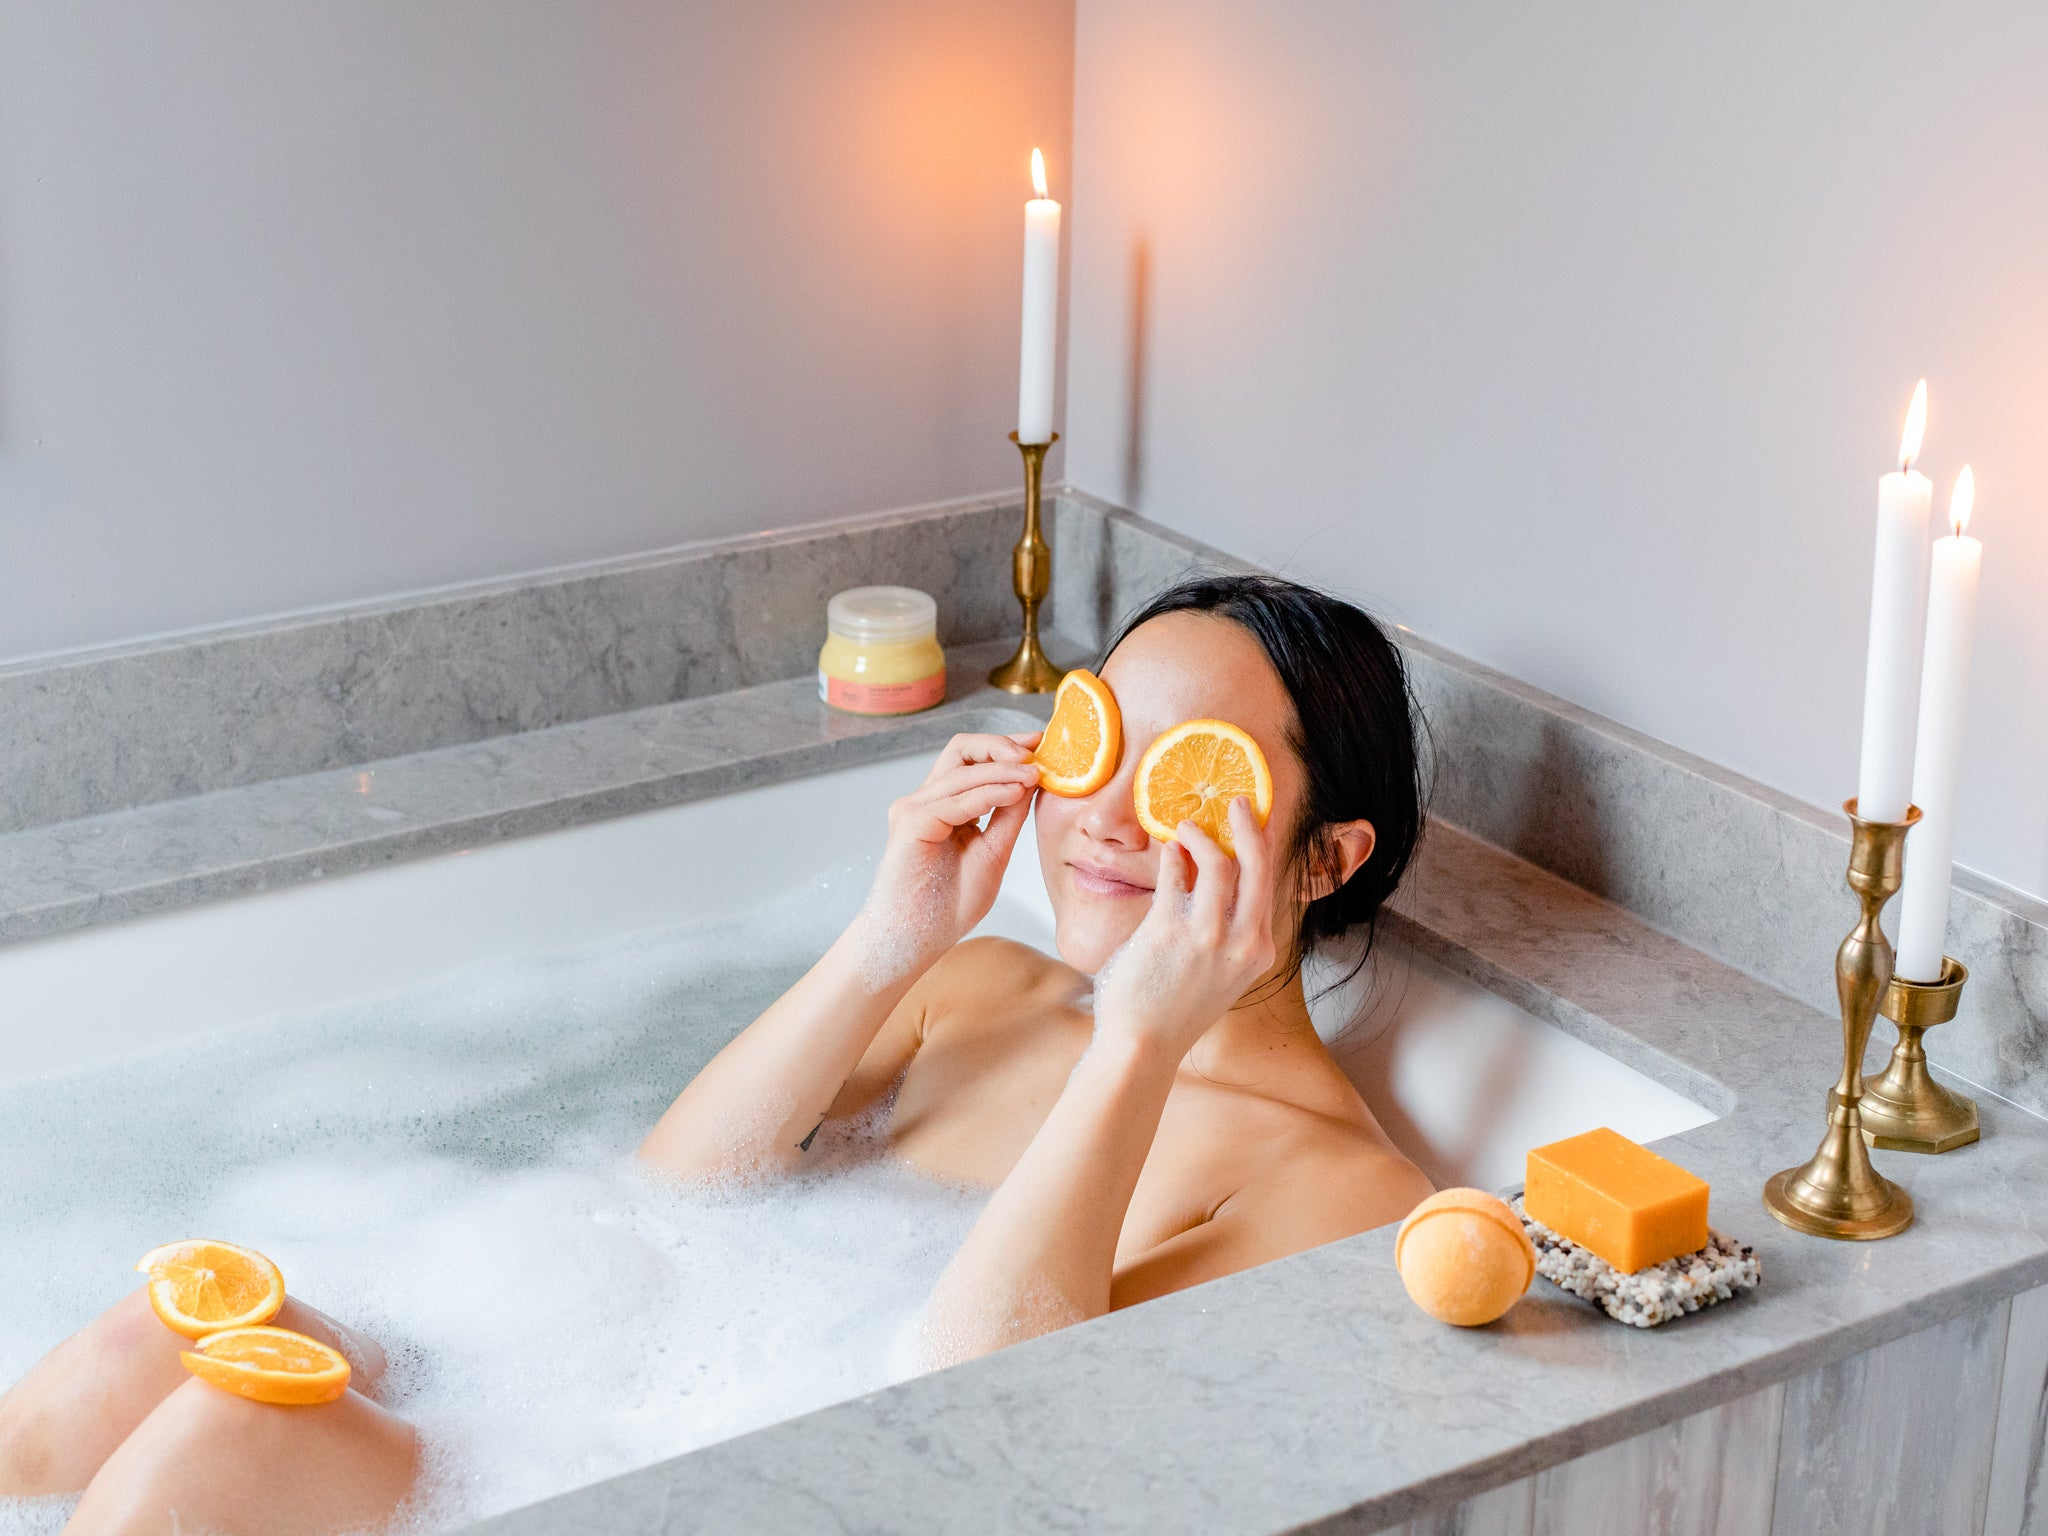 Woman in the bath with candles on the side of the tub and two orange slices over her eyes.